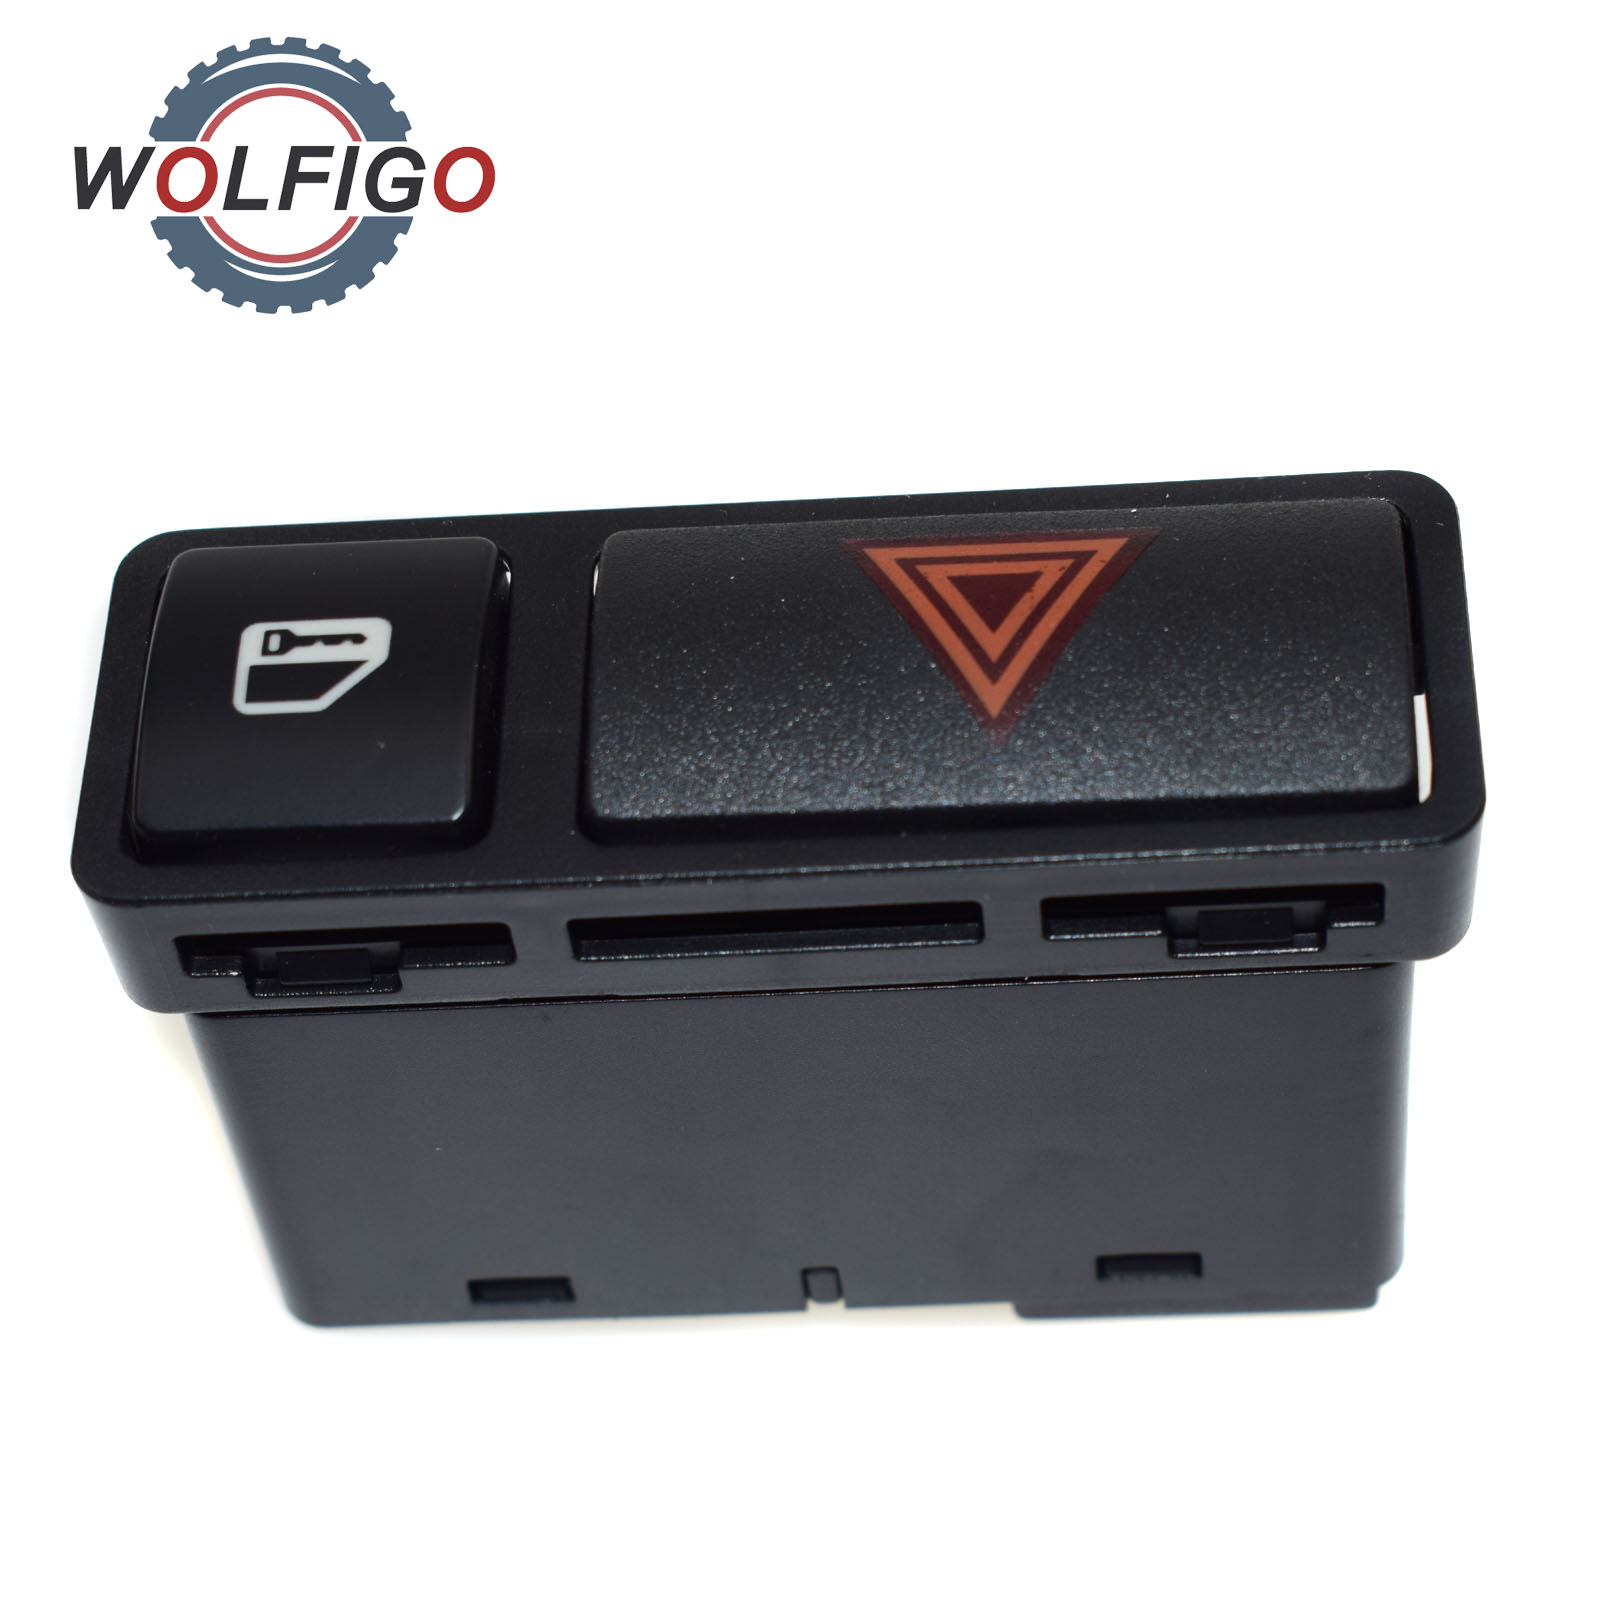 Bmw Z4 Warning Lights: WOLFIGO Warning Emergency Hazard Light Door Central Lock